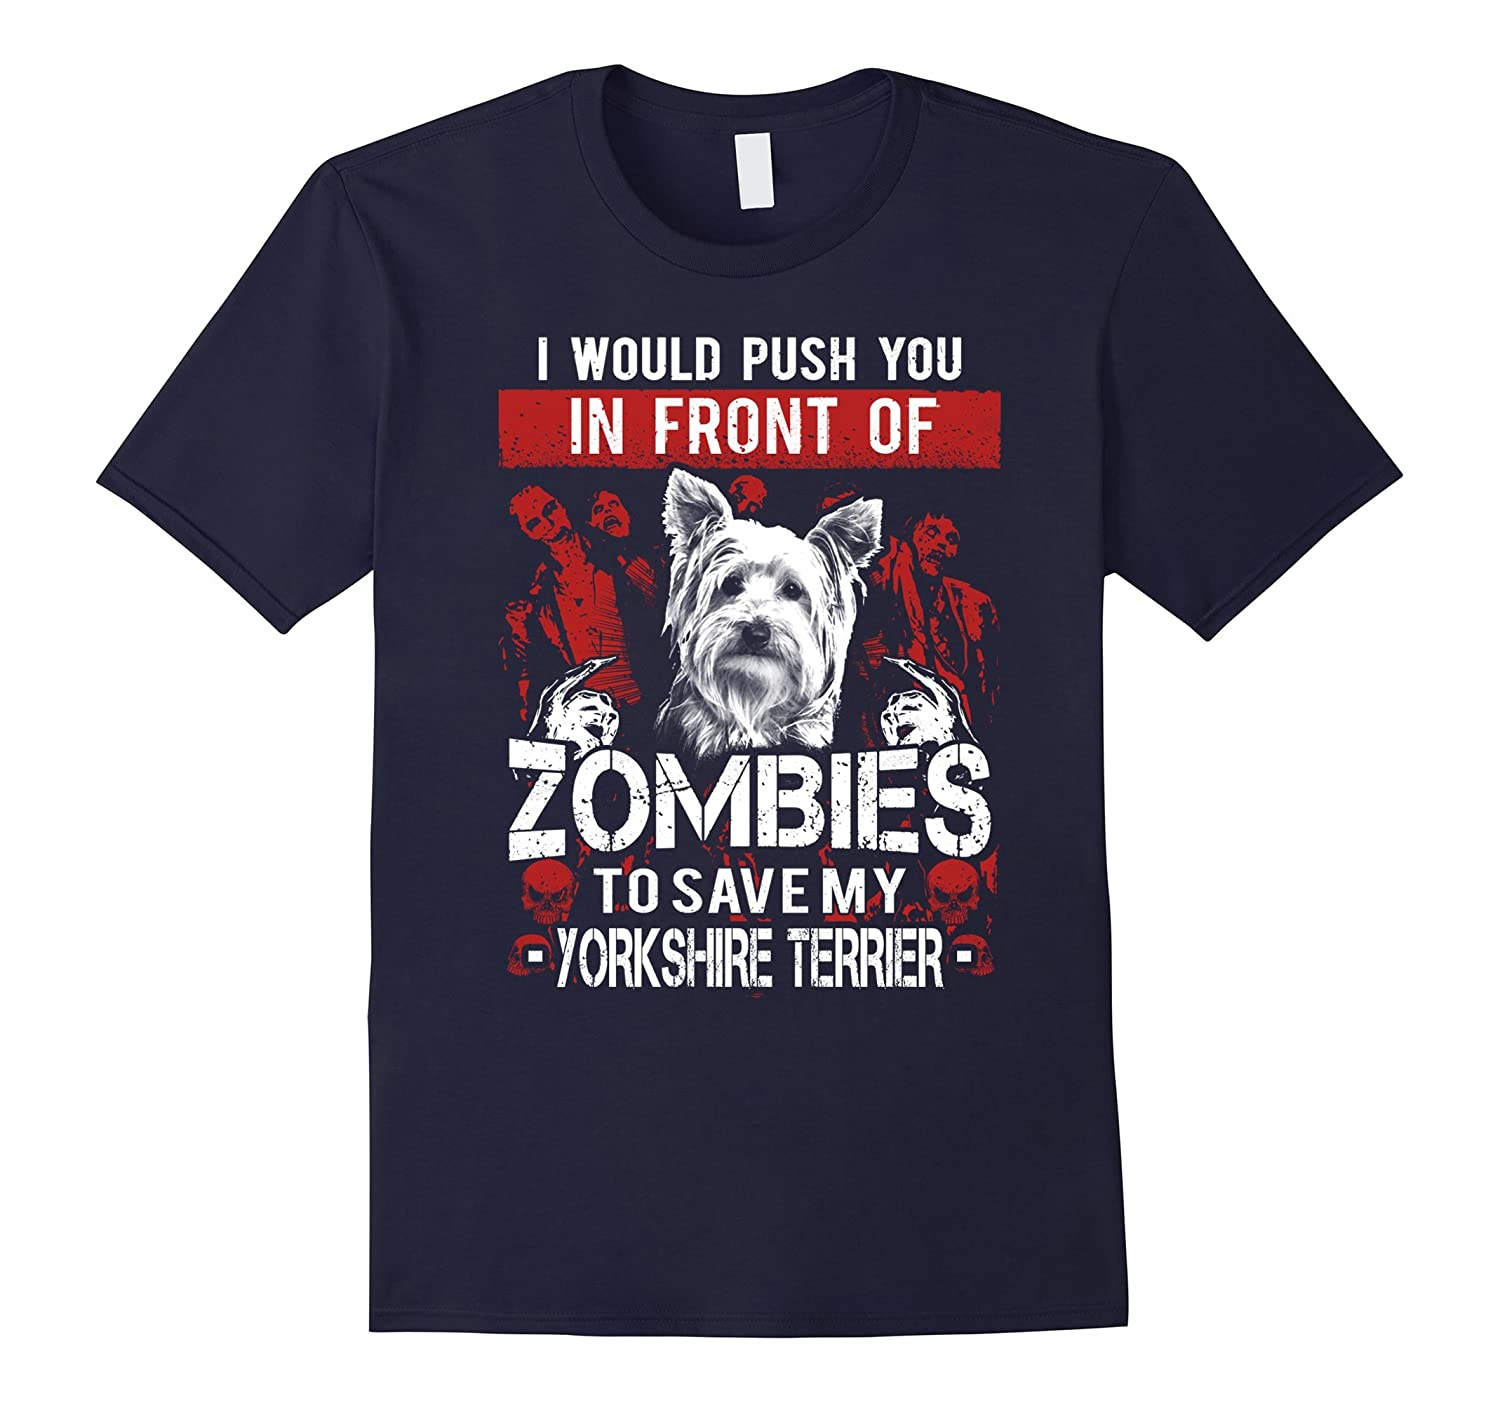 Zombies - Yorkshire Terrier shirt-ah my shirt one gift